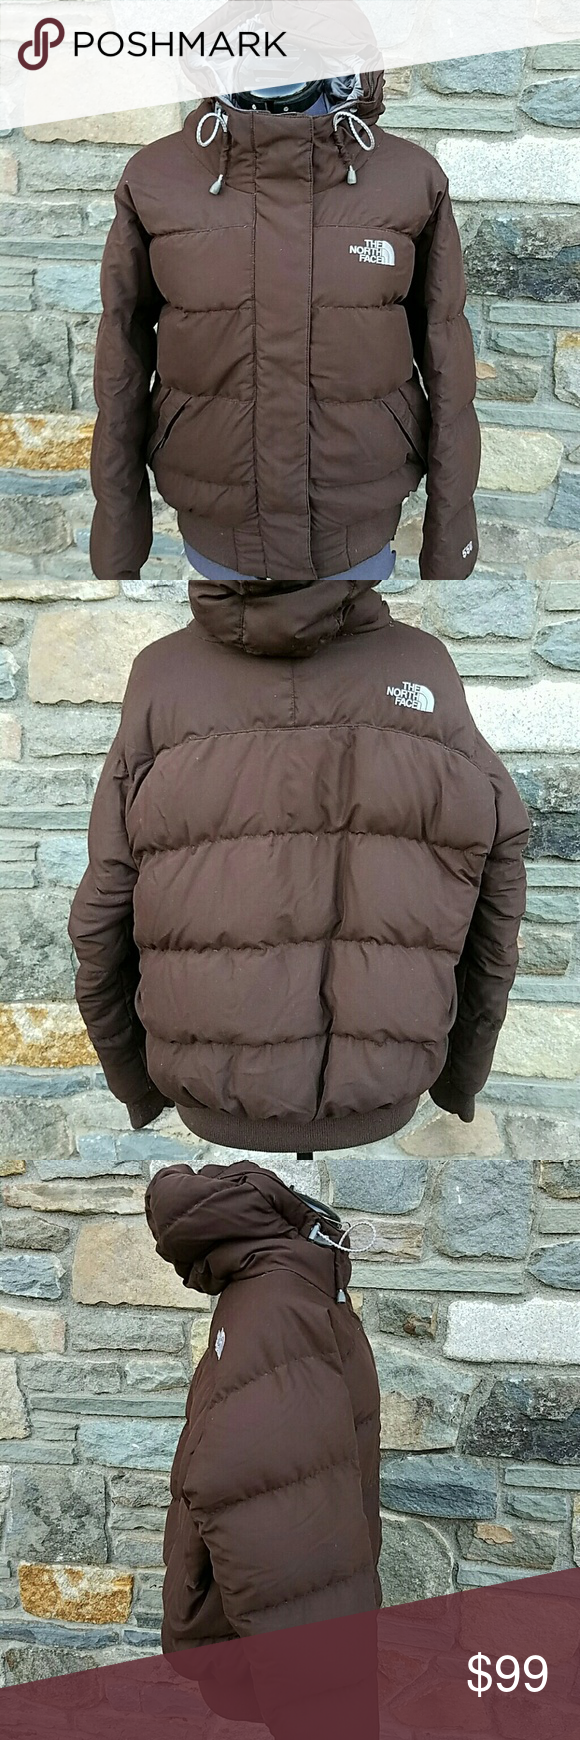 The North Face 550 down puffer jacket with hood Full zip